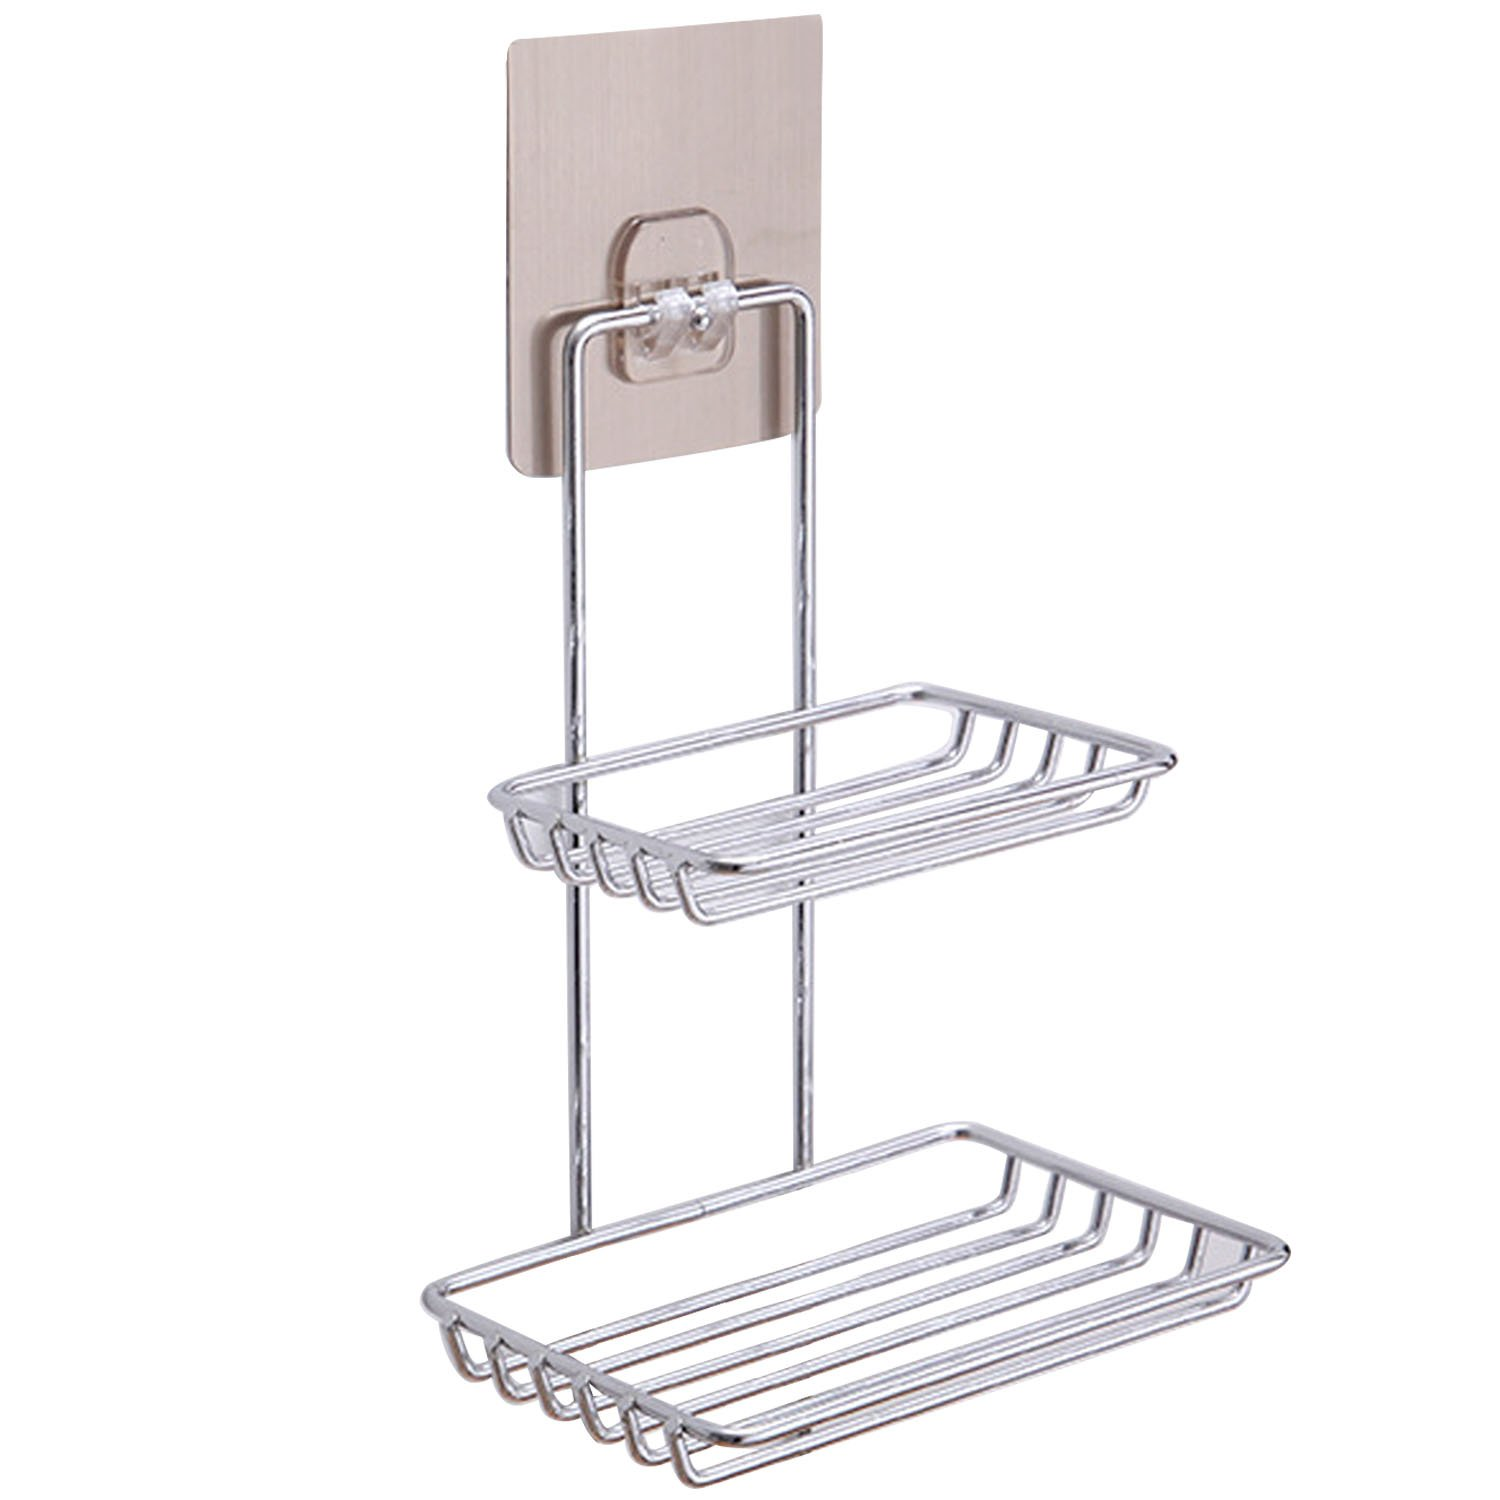 Stainless Steel Wall Mounted Sticky Shower Bathroom Kitchen Rack Shelf Holder Dual Layer for Soap Bath Towel Cleaning Supplies Kitchen Small Gadgets Gosear